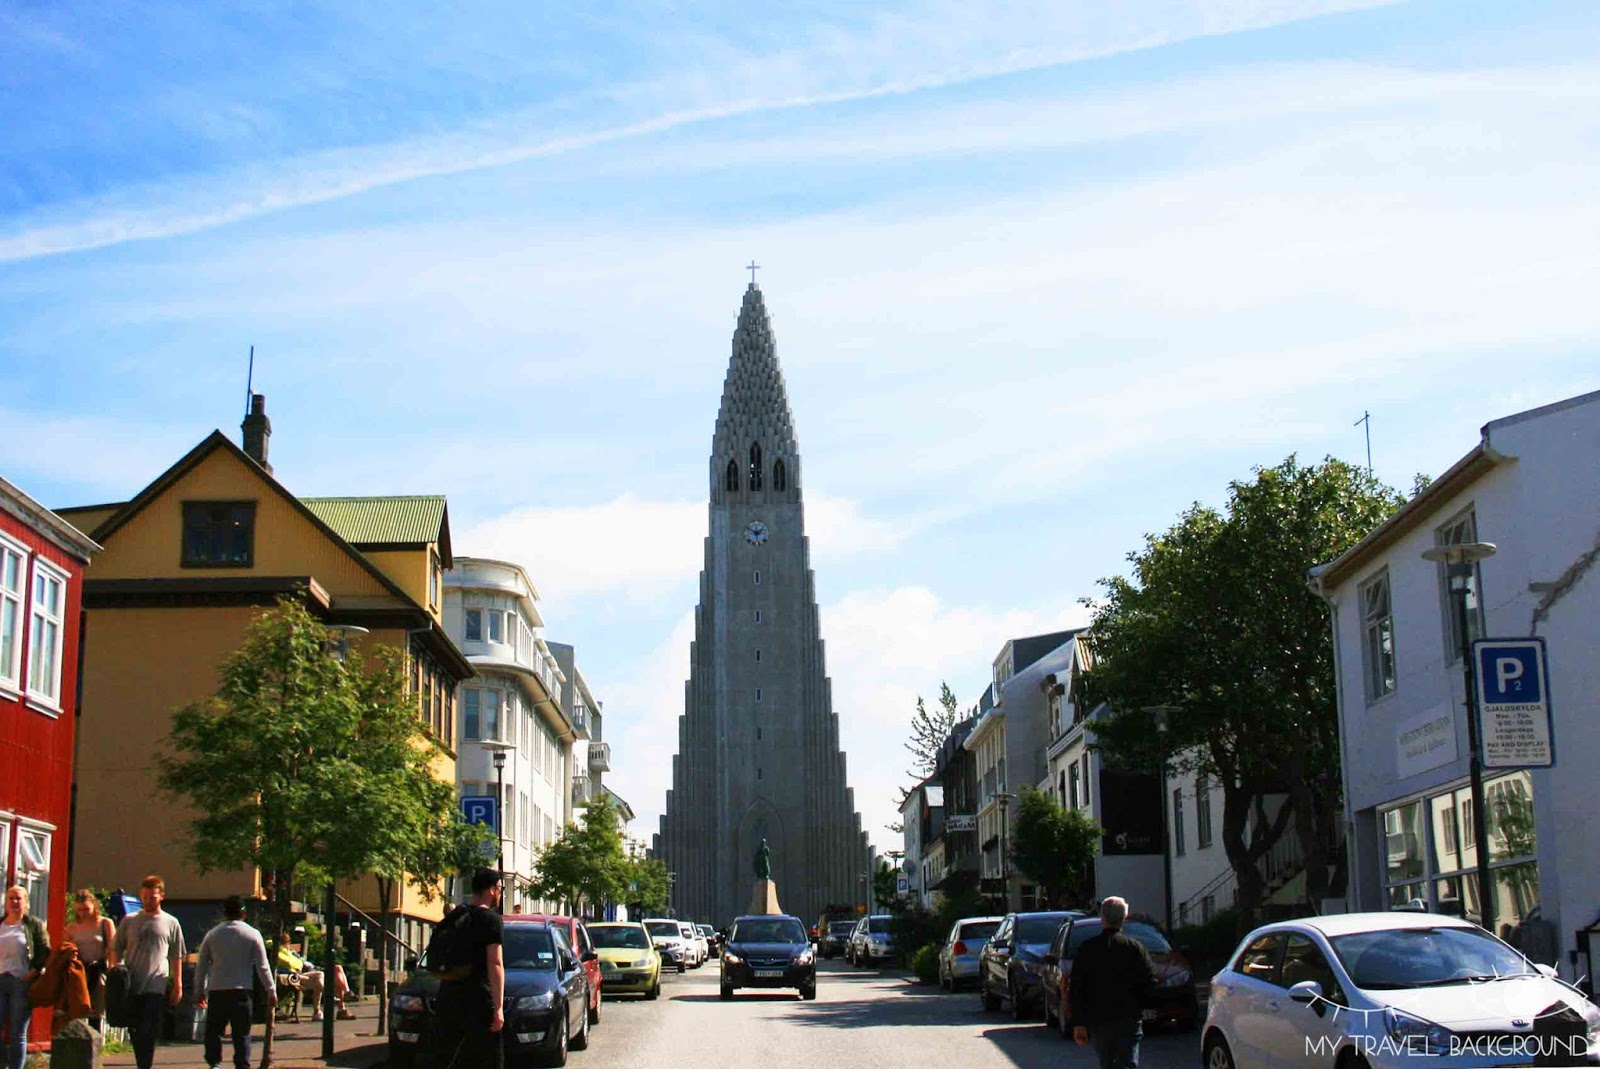 My Travel Background : 6 villes et villages découverts en 2016 - Reykjavik, Islande